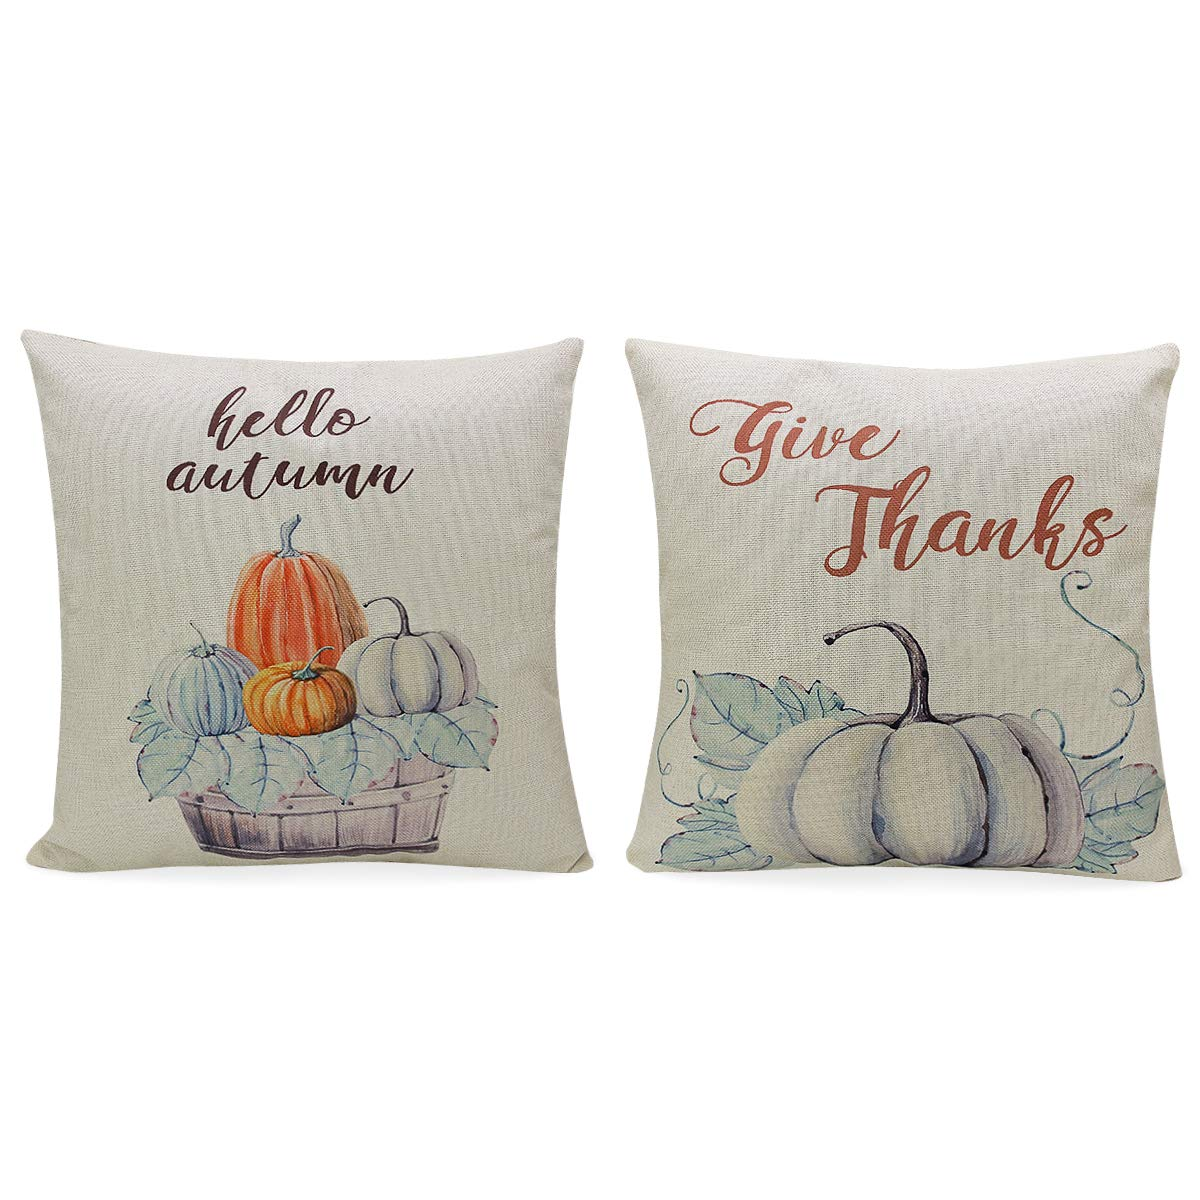 CREATIVE DESIGN Happy Thanksgiving Pumpkin Pillow Case Cotton Linen Pillow Cover Cushion Cover for Sofa Thanksgiving Autumn Home Décor 18X18 Inch, Set of 2